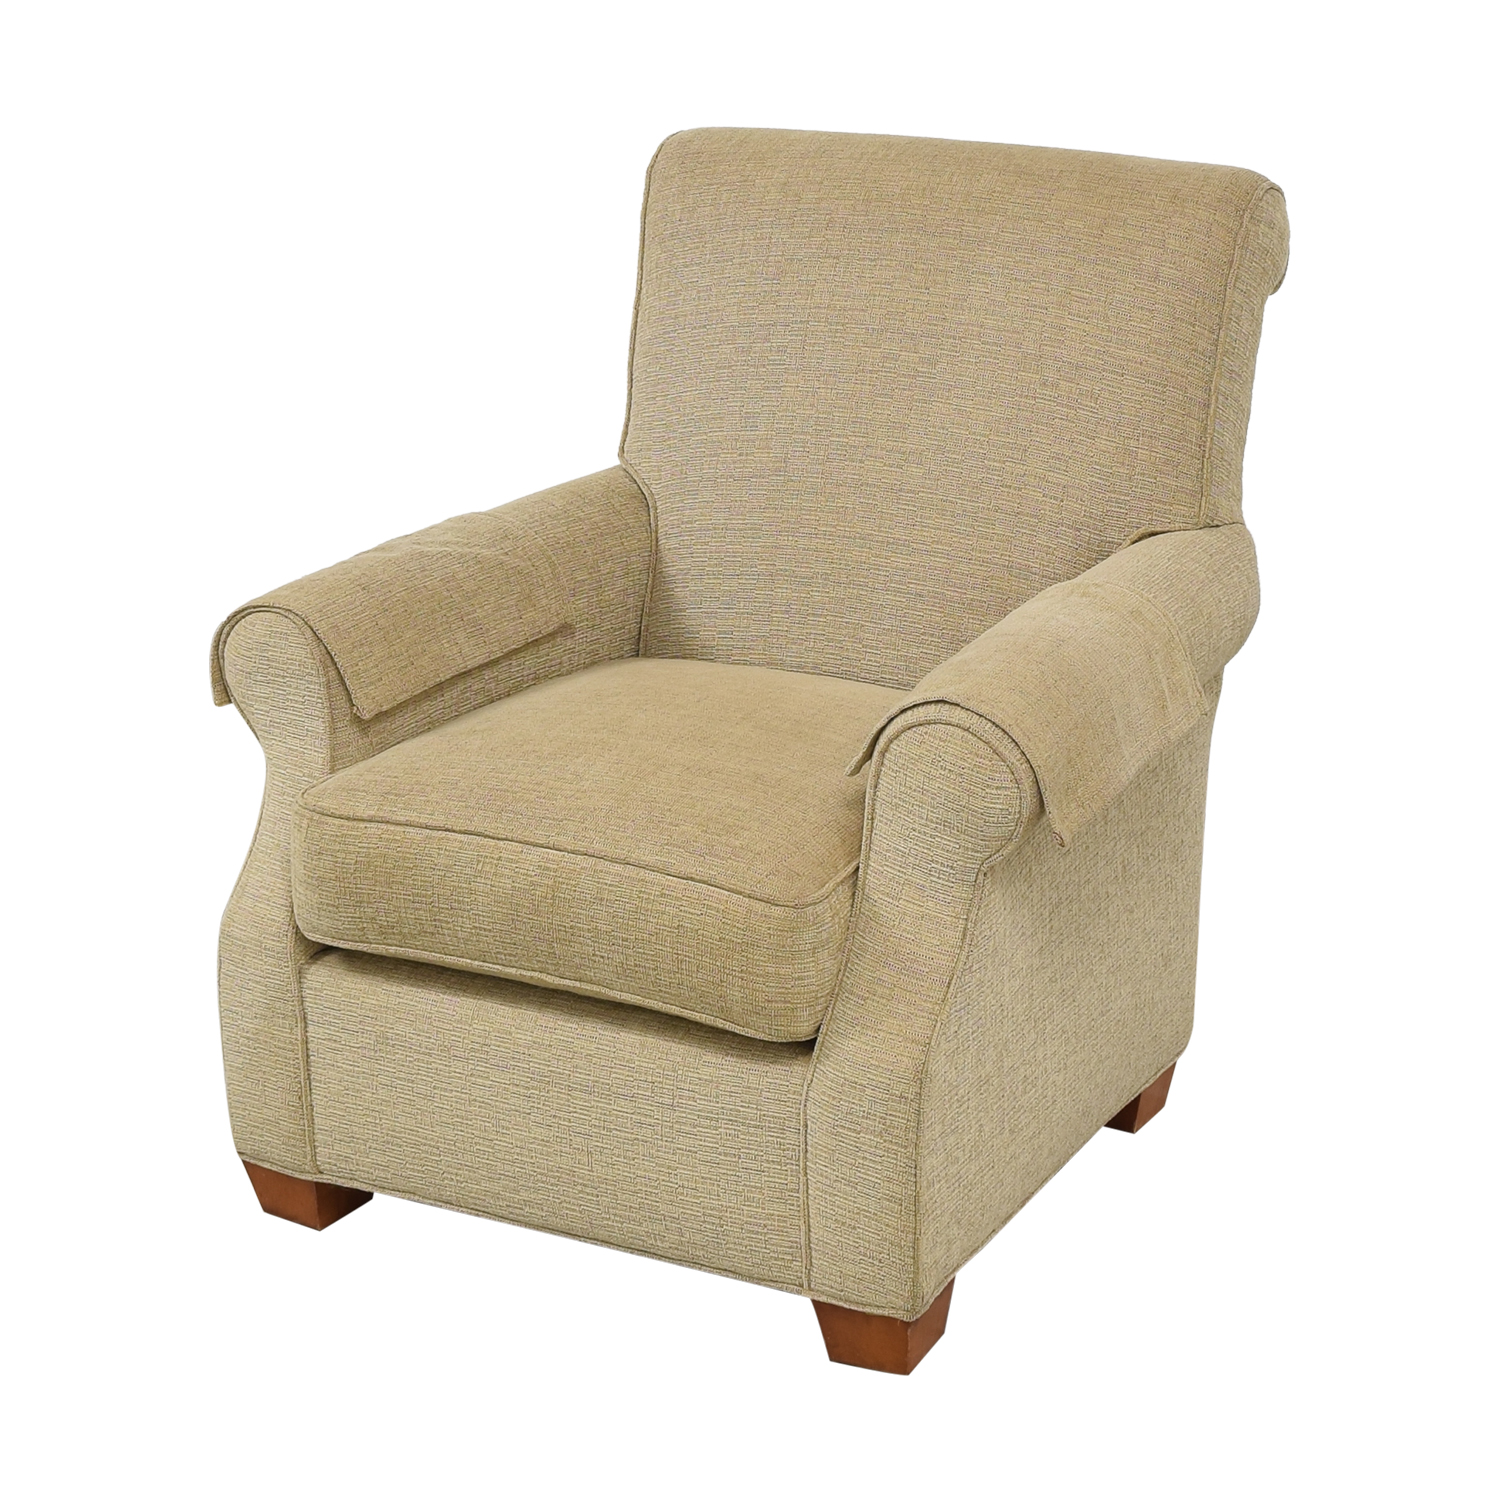 shop Macy's Upholstered Accent Chair Macy's Chairs